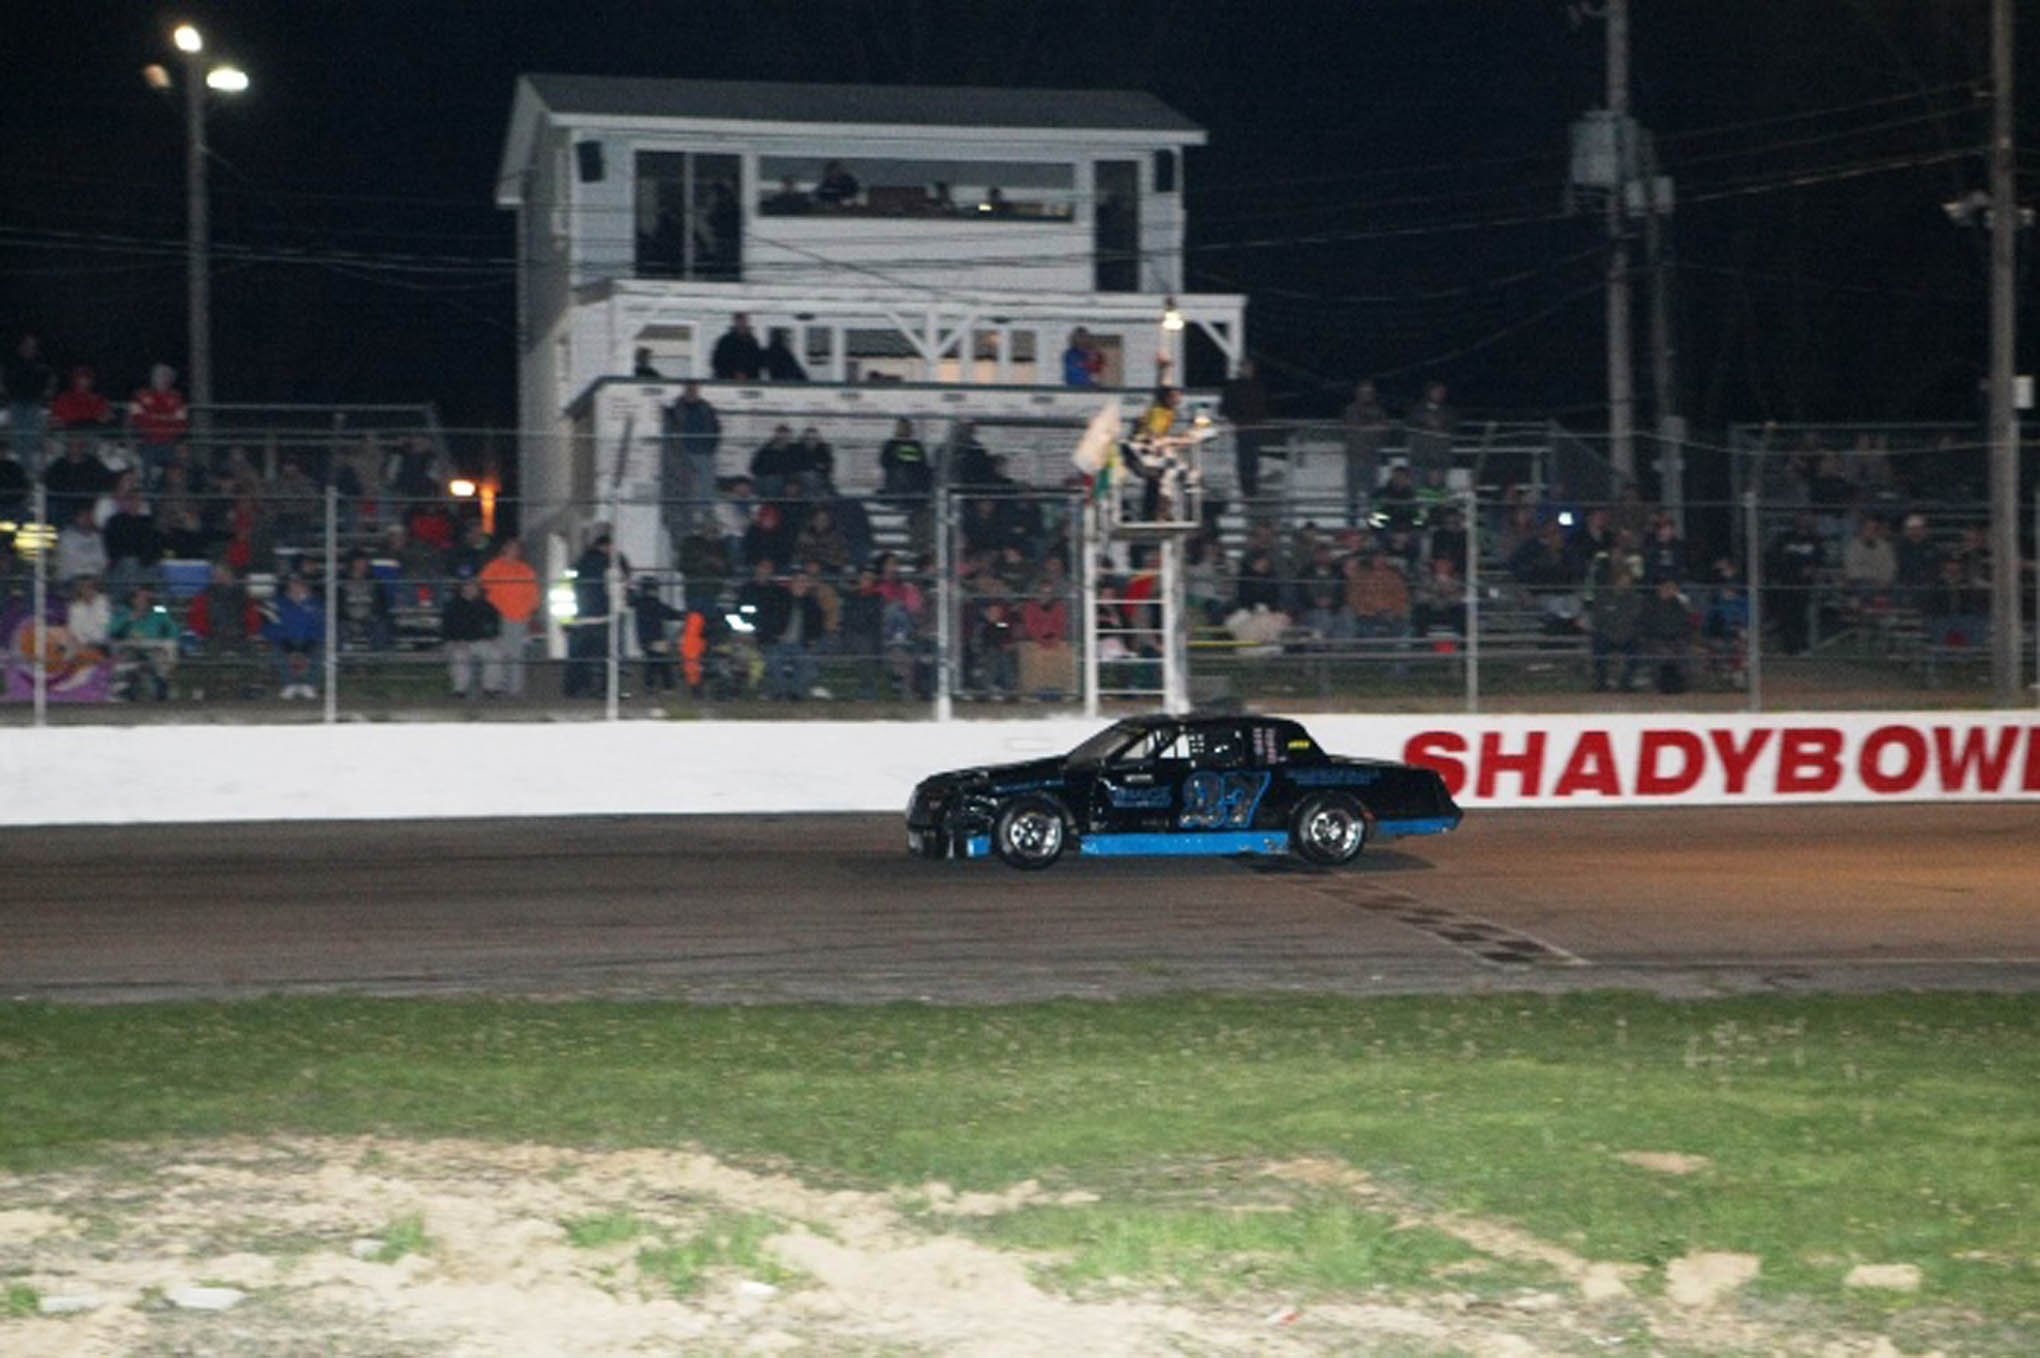 Josh Poore takes the checkered flag at Shady Bowl